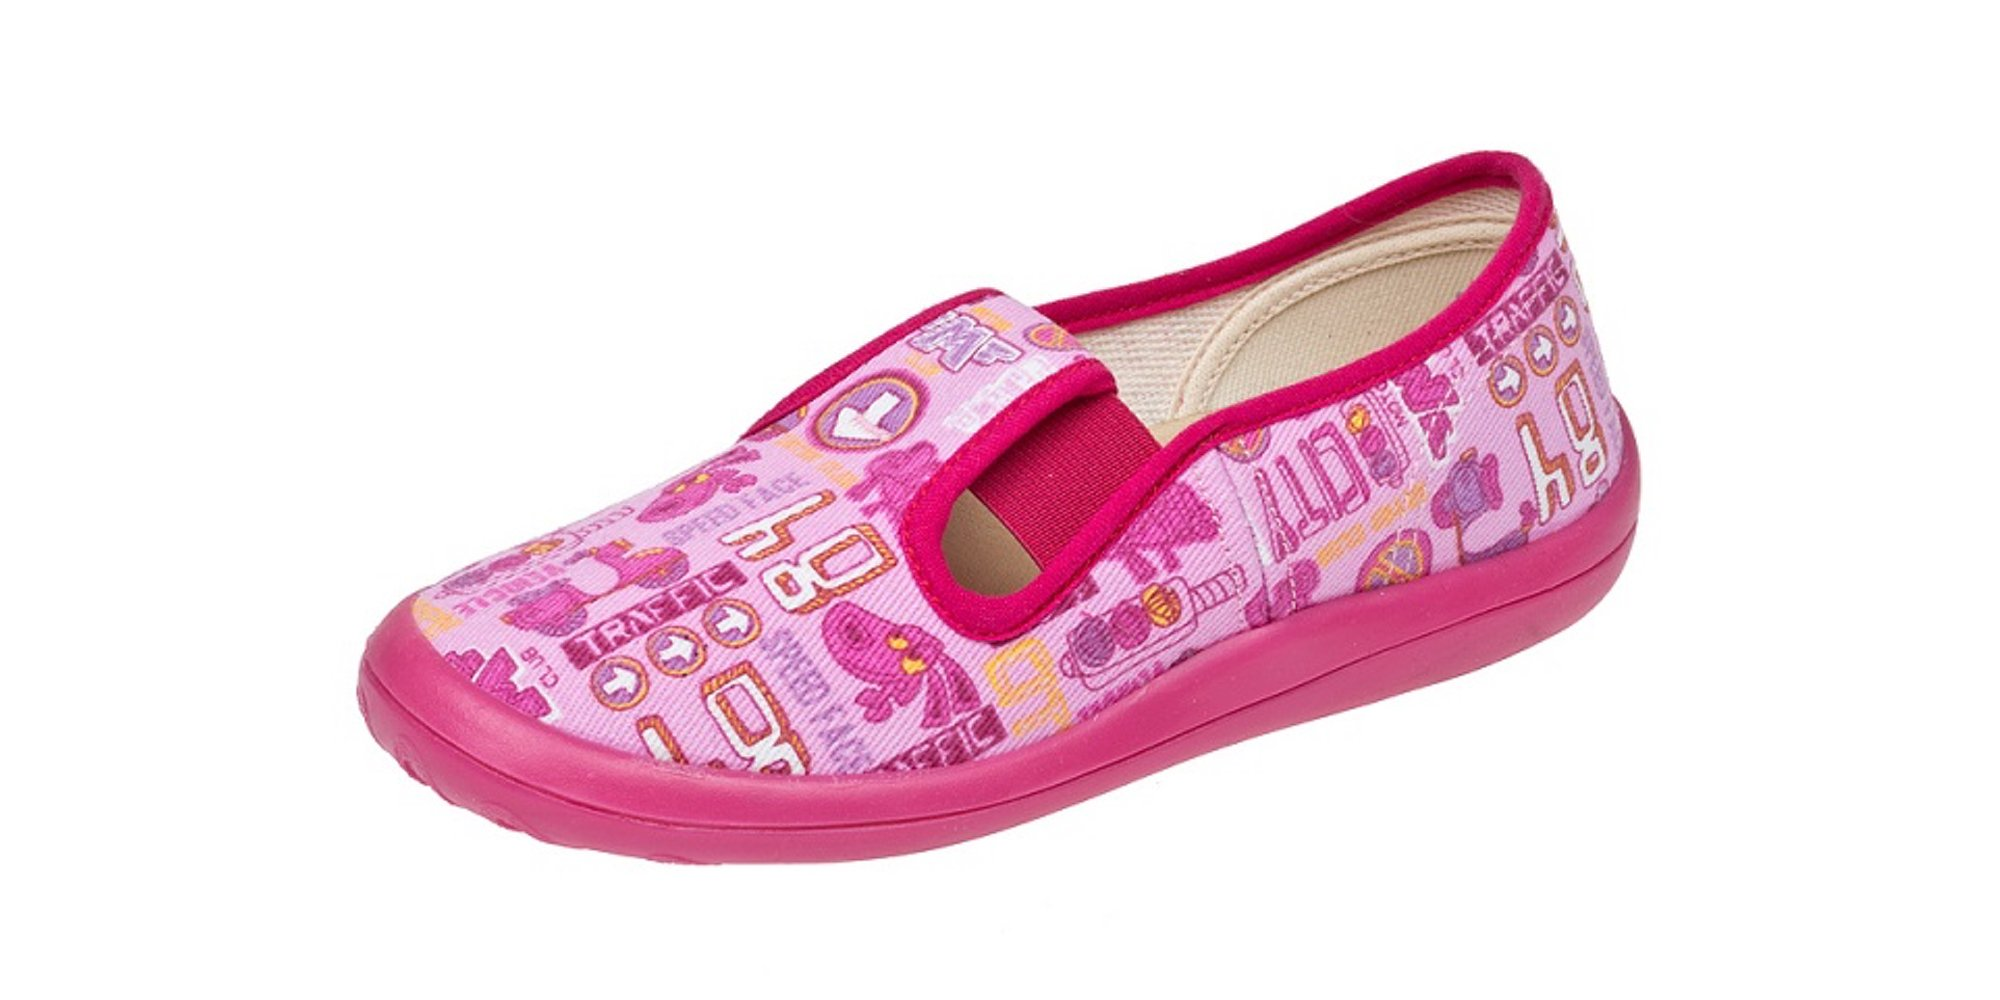 Mediska City Girls Flats Shoes (9.5)